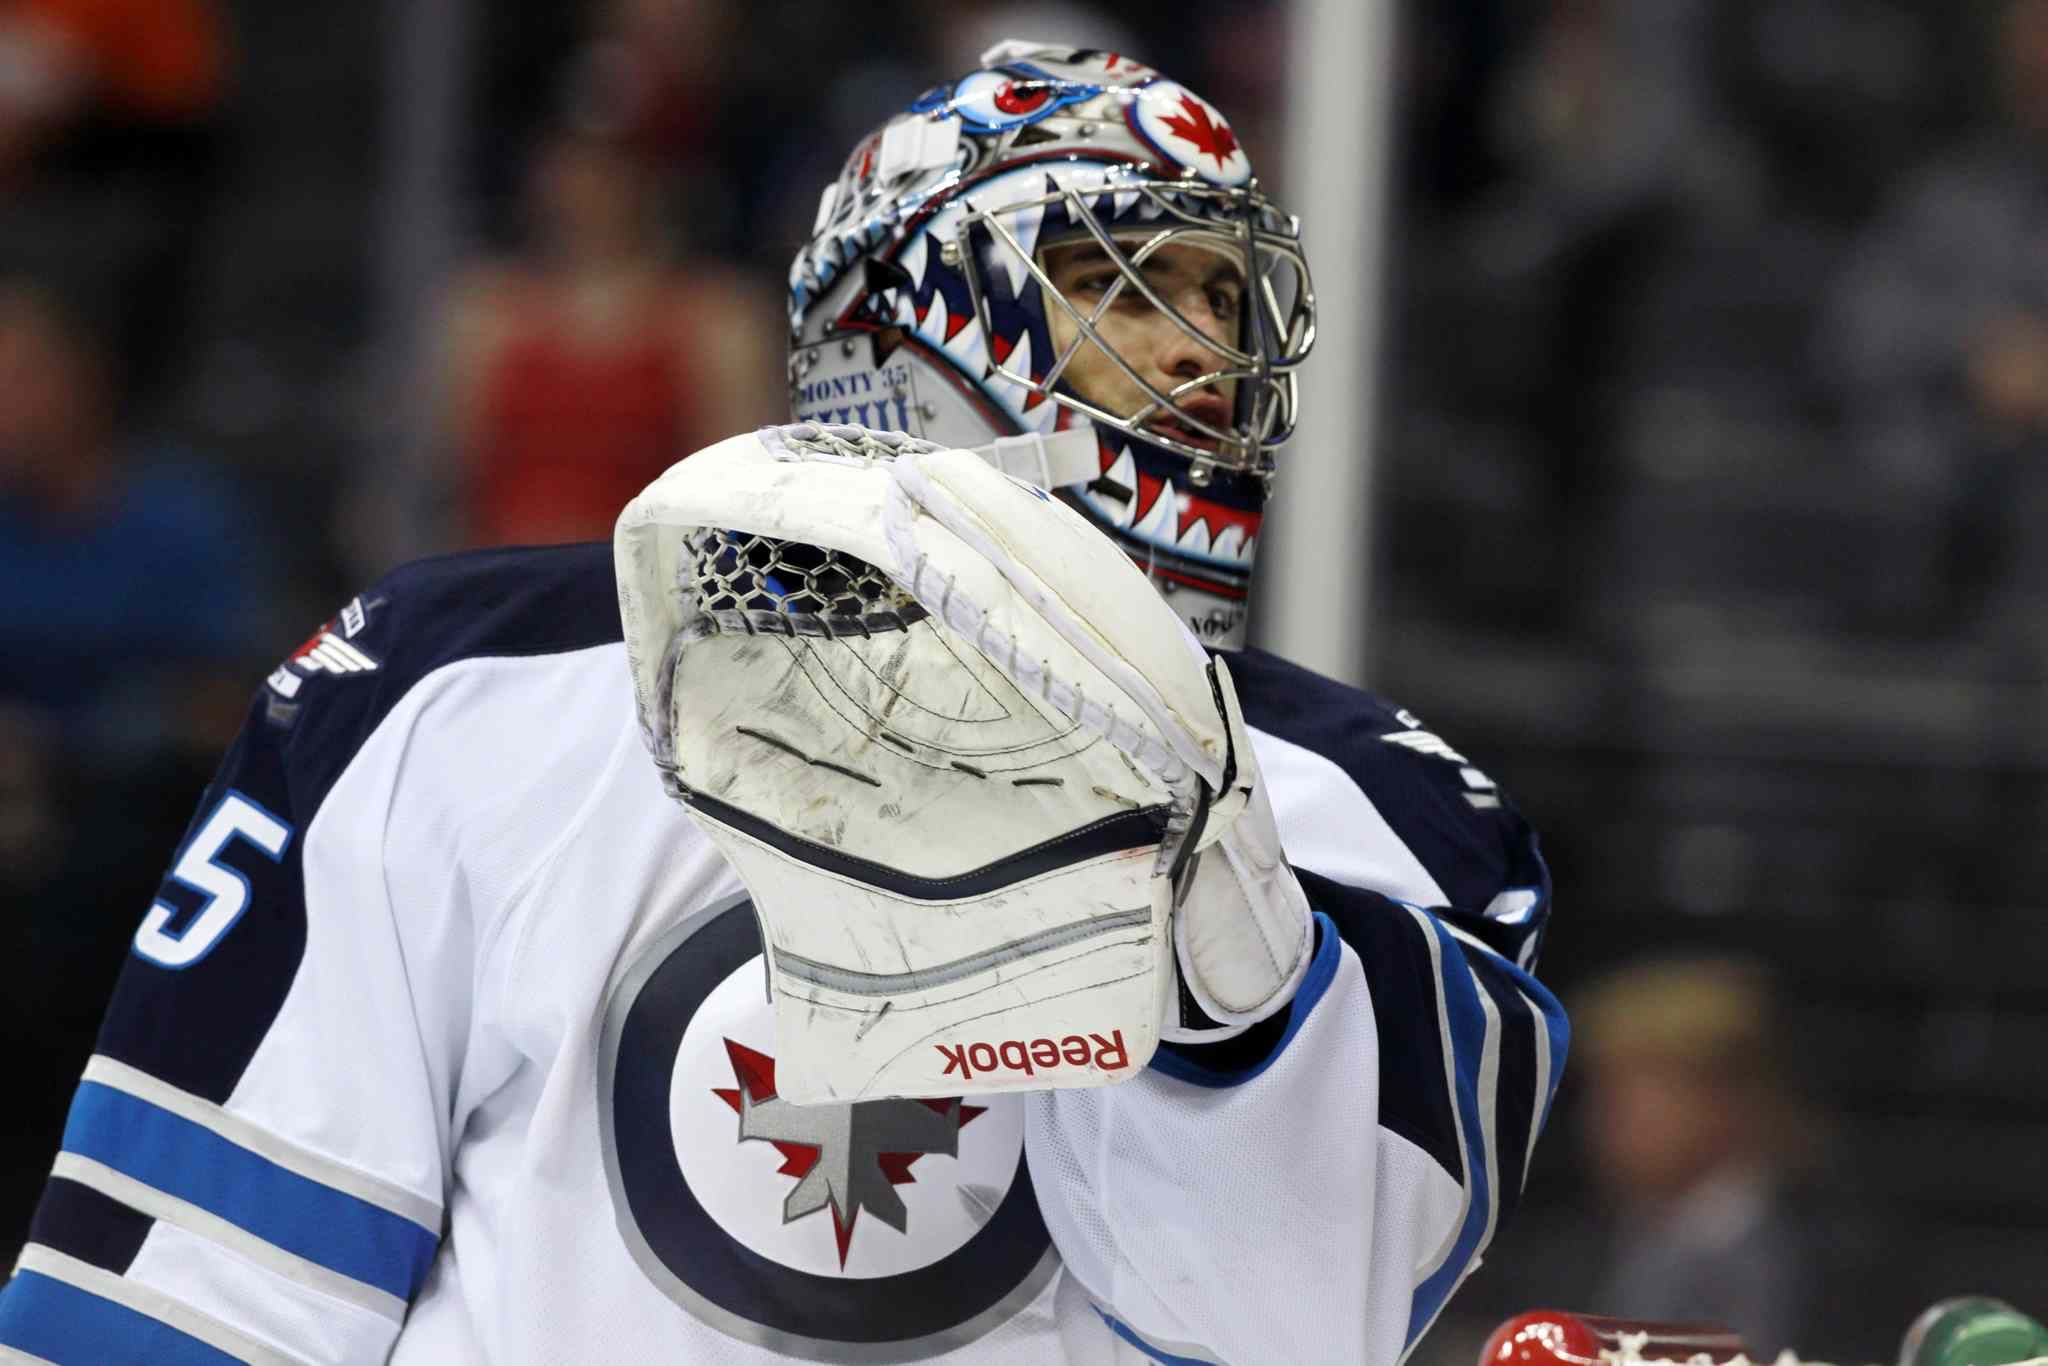 Winnipeg Jets goalie Al Montoya talks with a referee during a break in play in the second period.